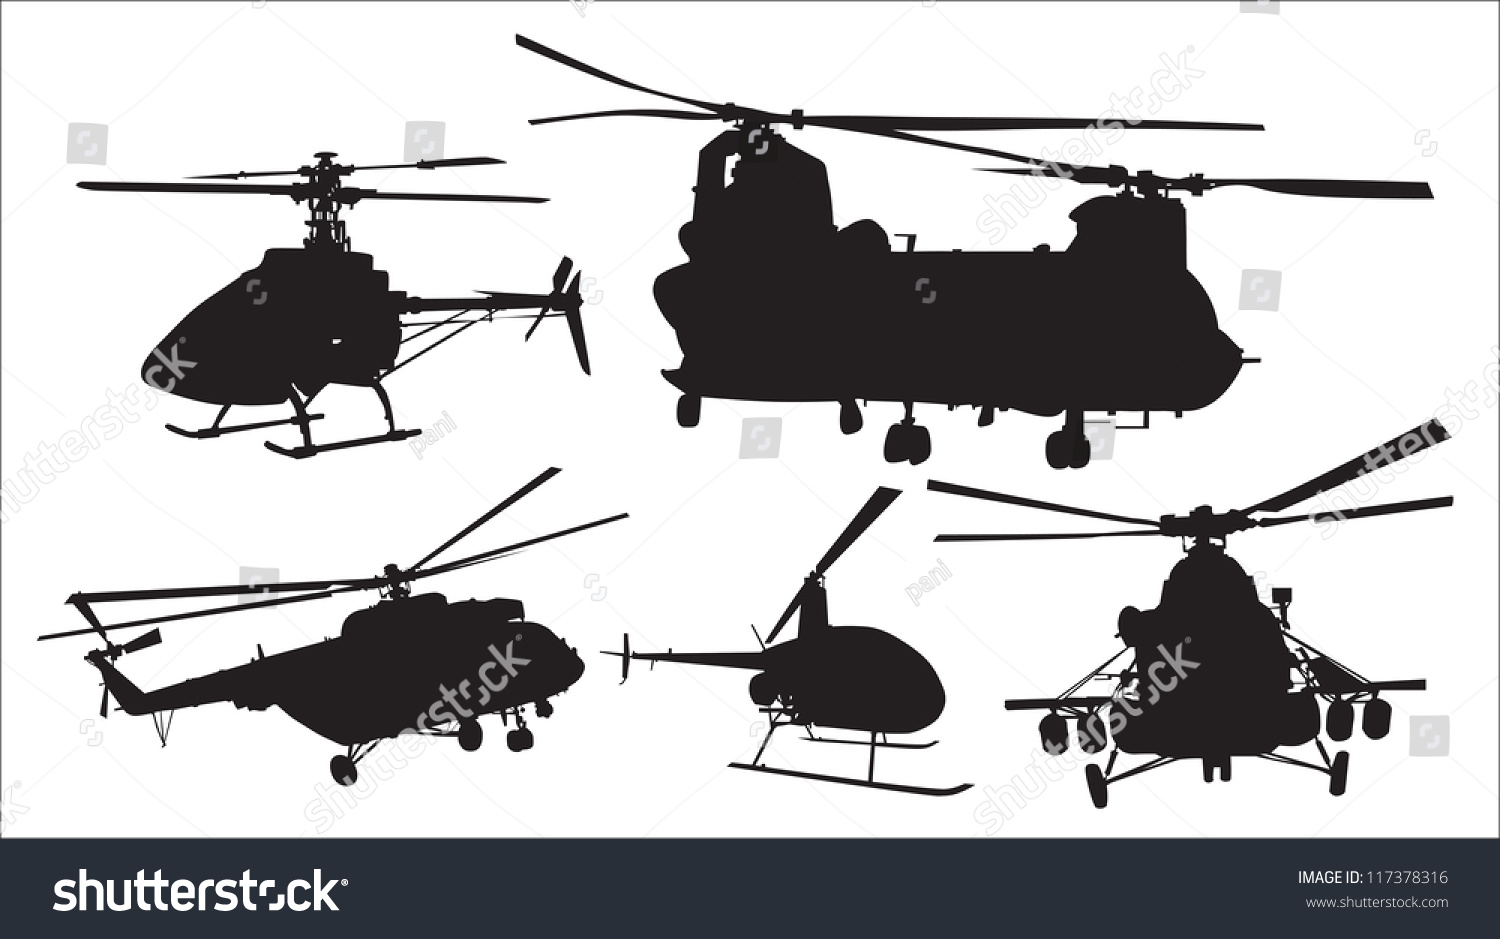 apache helicopter footage with Stock Vector Silhouettes Of Military Helicopters on F 35 lightning Ii hd Stock Footage in addition 8 likewise Gunship furthermore M230 Chain Gun further Watch.